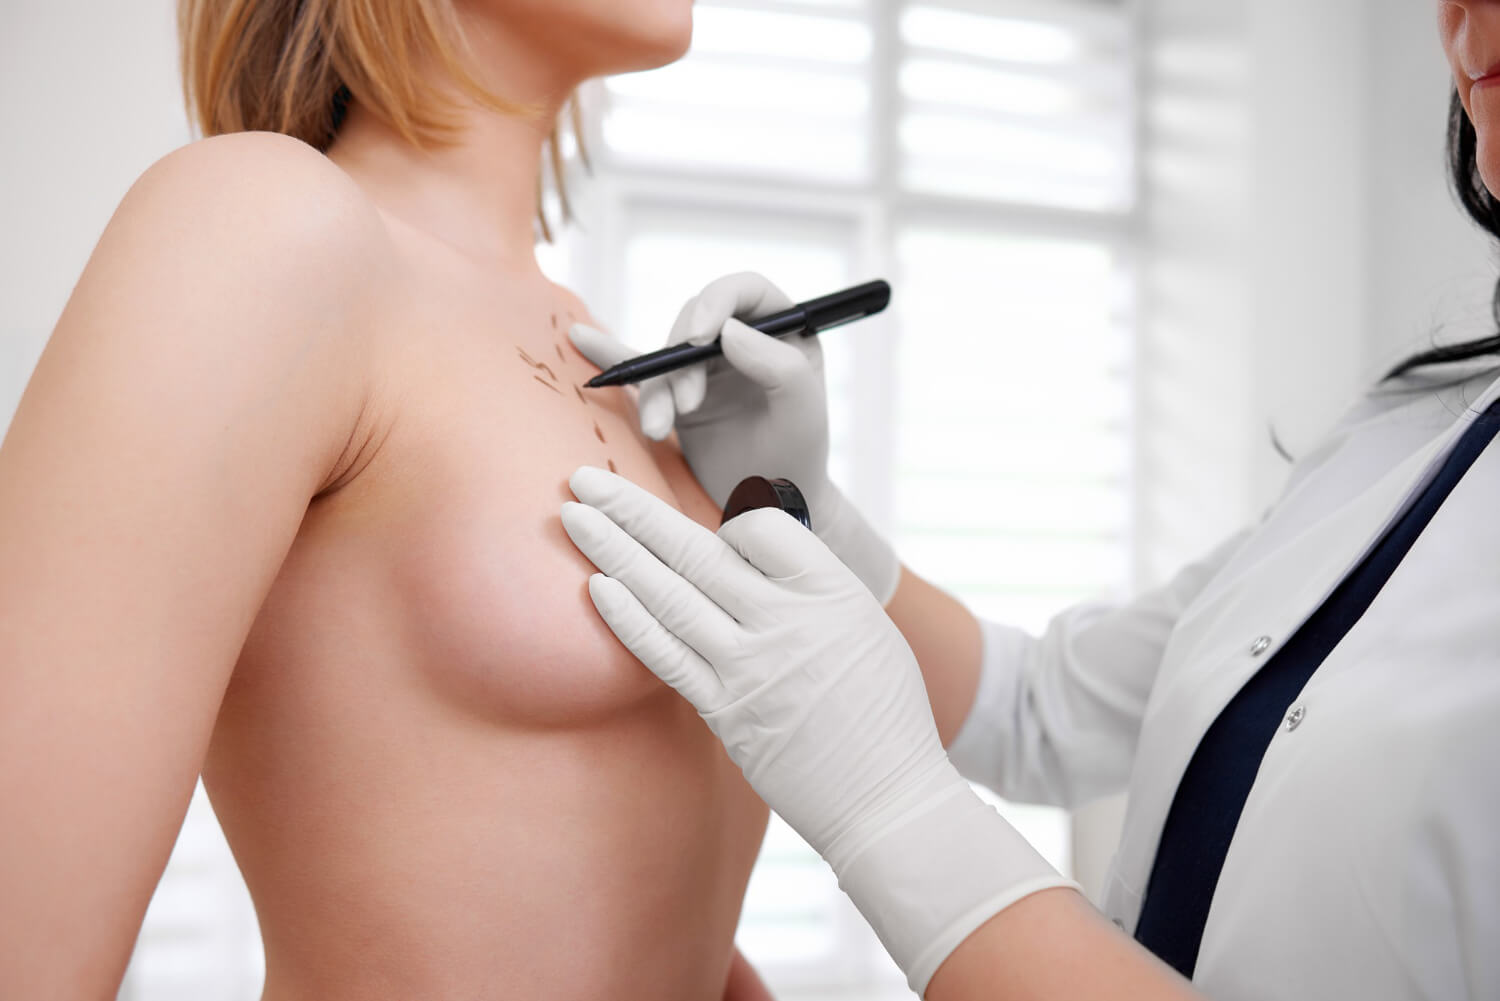 How many days does breast augmentation surgery take in Turkey?